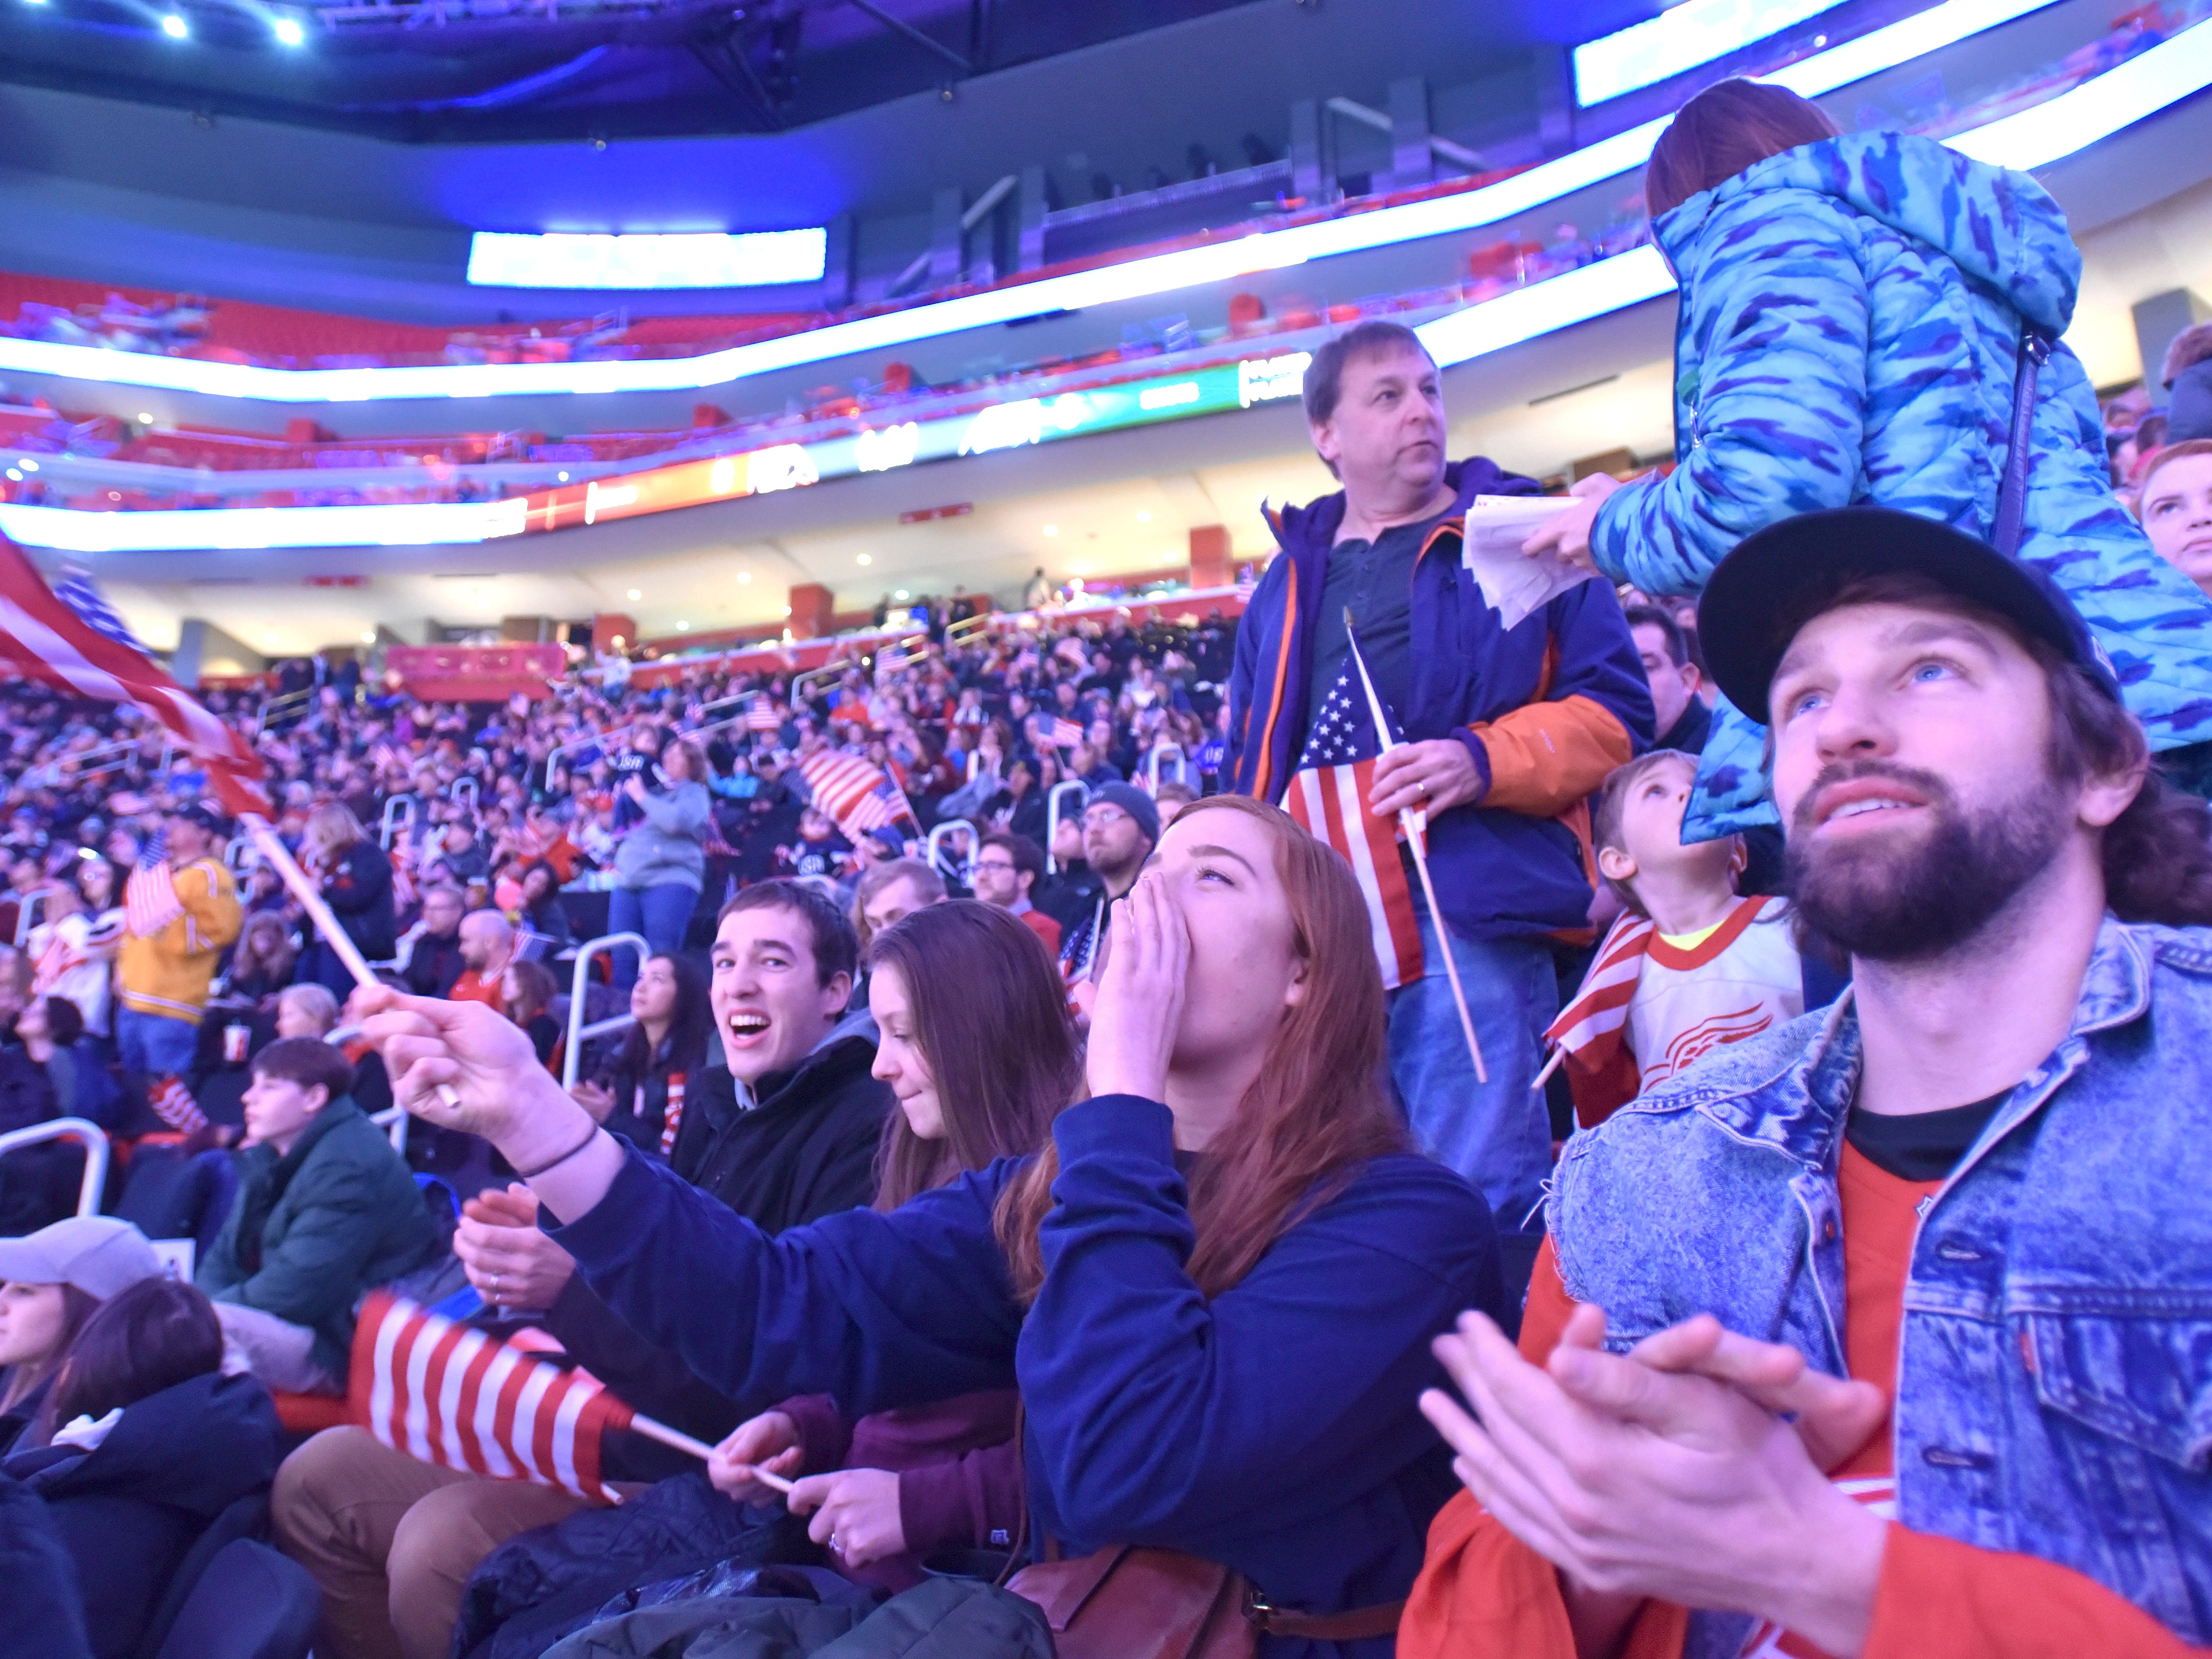 U.S. fans cheer for their team during warmups before the U.S. Women's National Hockey Team and Canada's National Women's Team match at Little Caesars Arena in Detroit during the 2019 Rivalry Series, Sunday afternoon, February 17, 2019.